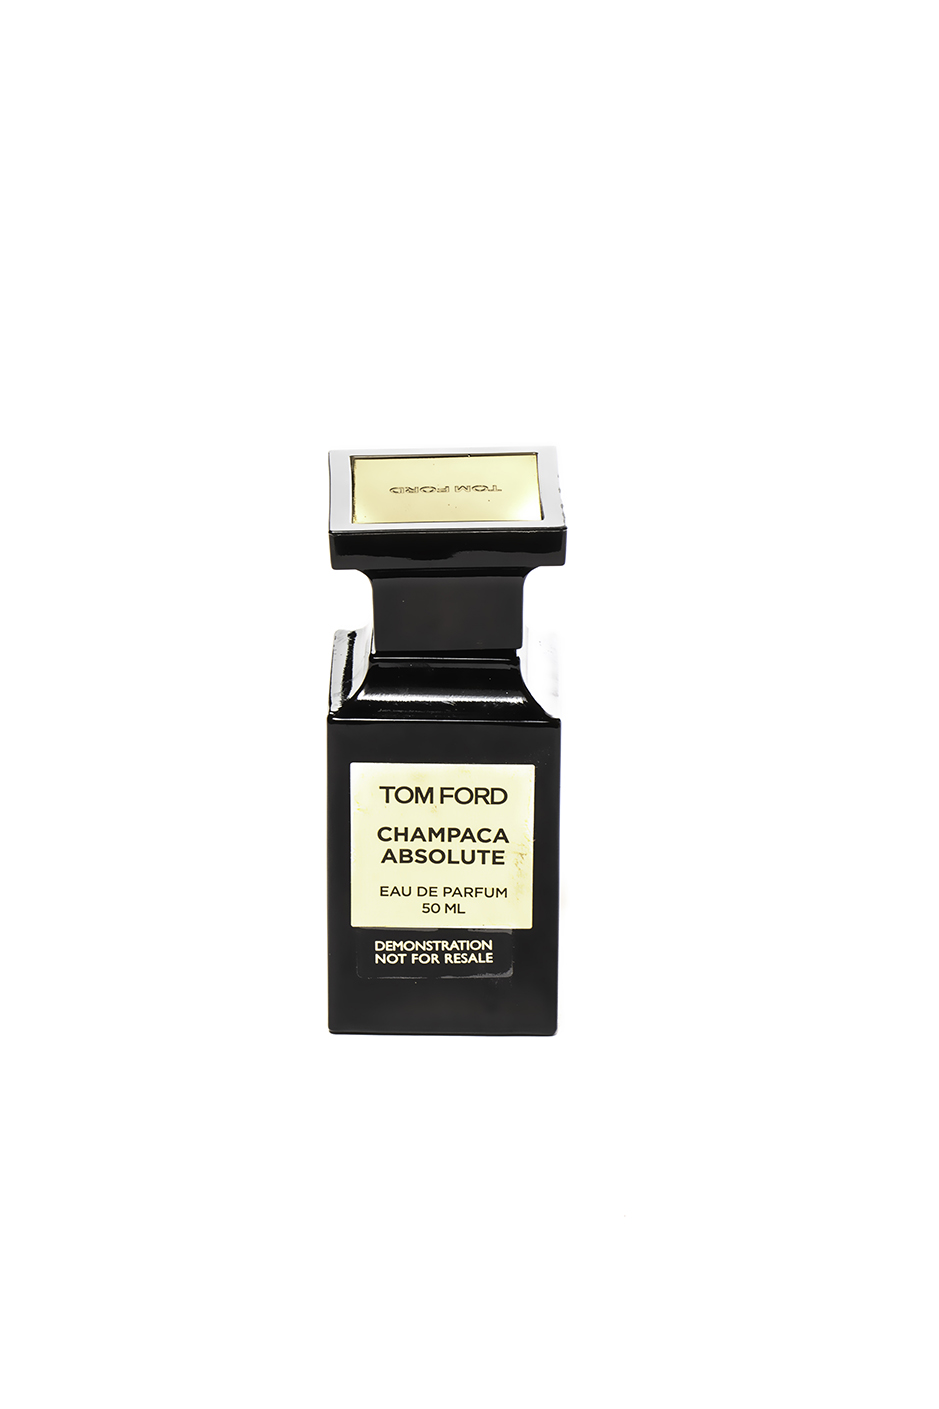 Tom Ford Champaca Absolute edp sp 50ml Tester טום פורד צ'מפאקה אבסולוט אדפ ספ 50מל טסטר